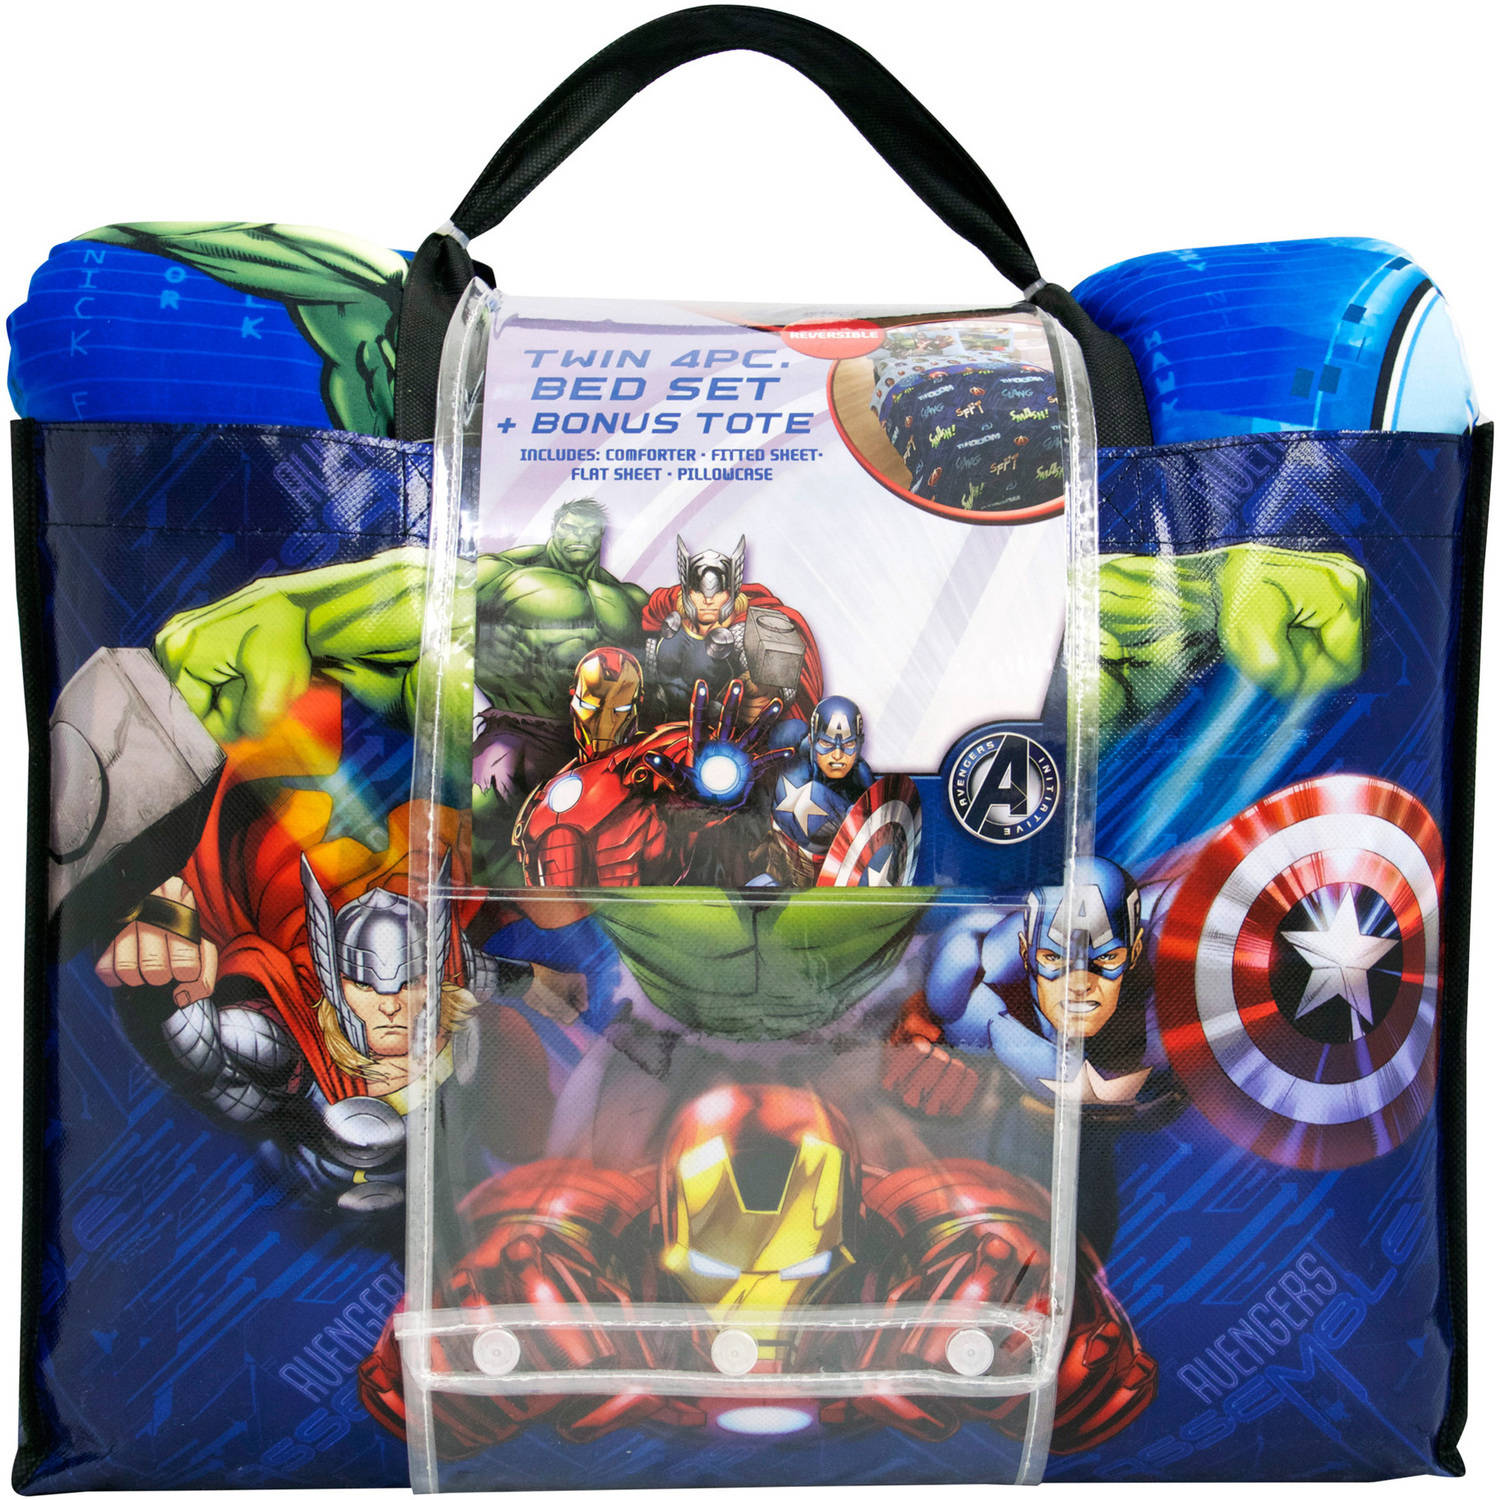 Avengers bedding set twin - Marvel Avengers Assemble Smash 4 Piece Bedding Set With Bonus Tote Walmart Com